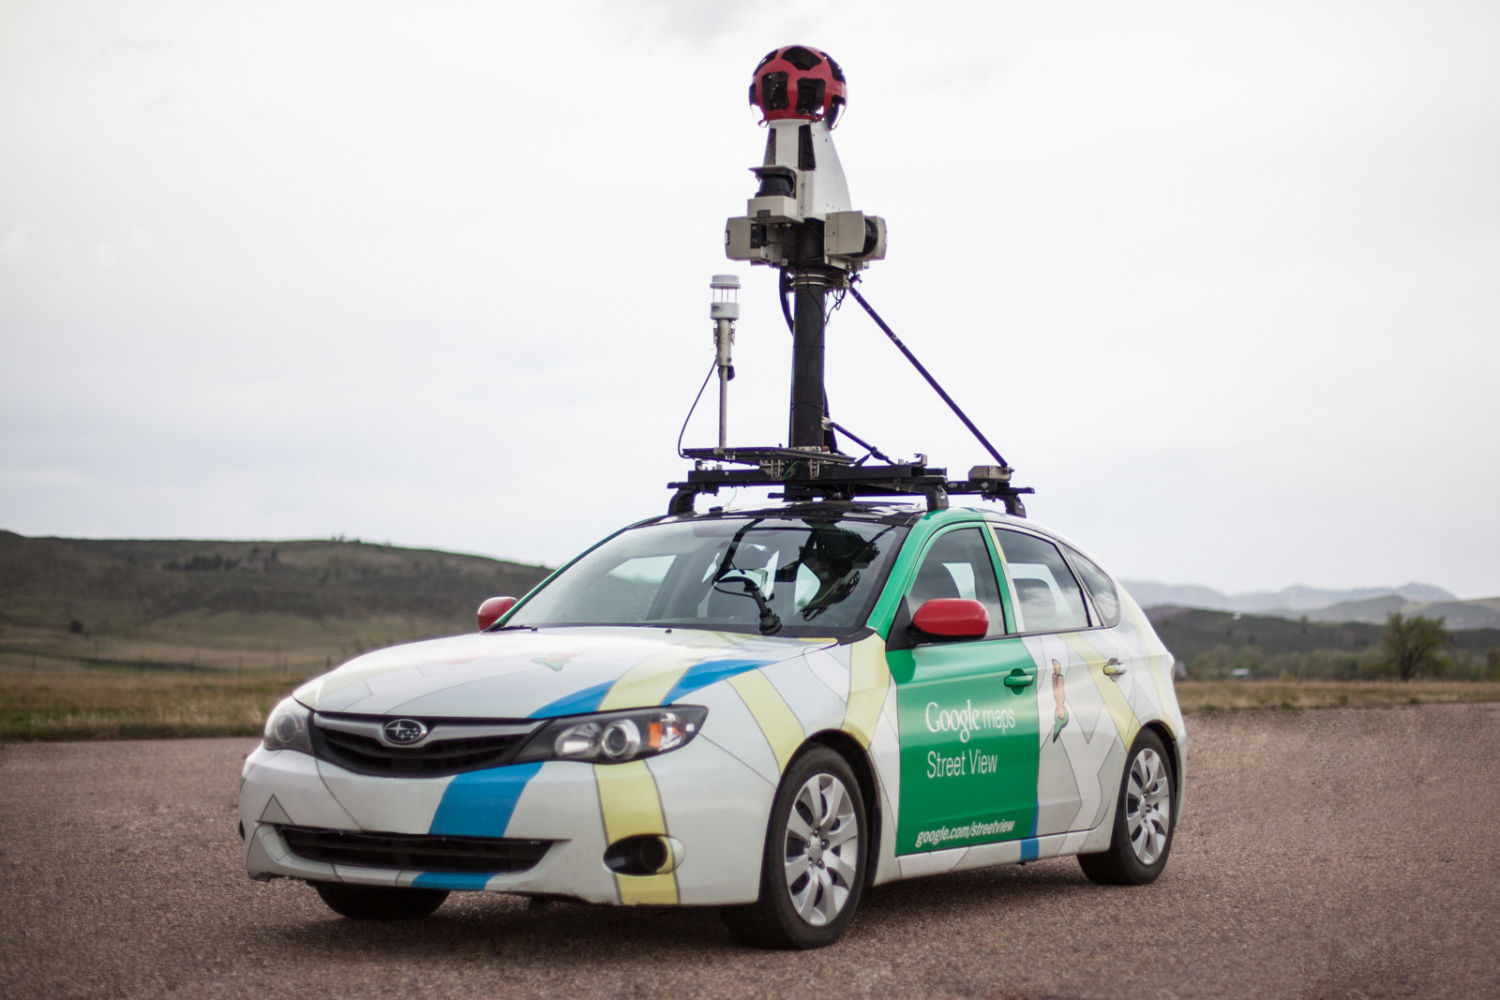 google street view cars are now helping to track methane leaks yale e360. Black Bedroom Furniture Sets. Home Design Ideas